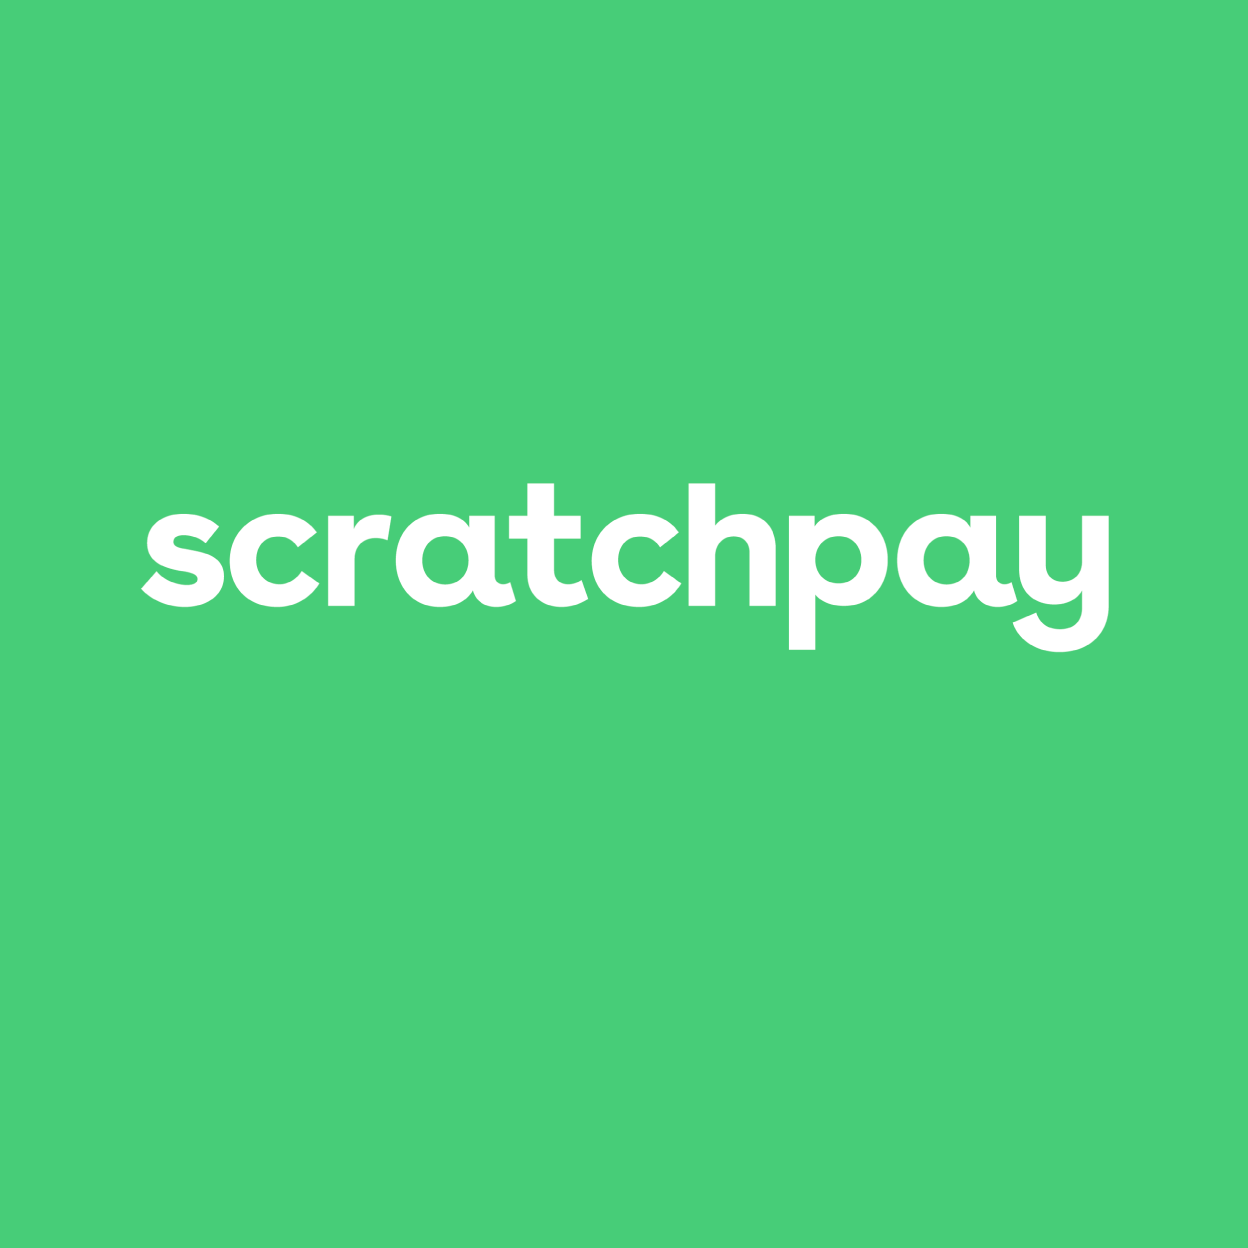 Scratchpay, backed by super angels such as Tim Greenleaf and Steve Streit, is building a mobile-first point-of sales financing solution for veterinarian procedures.